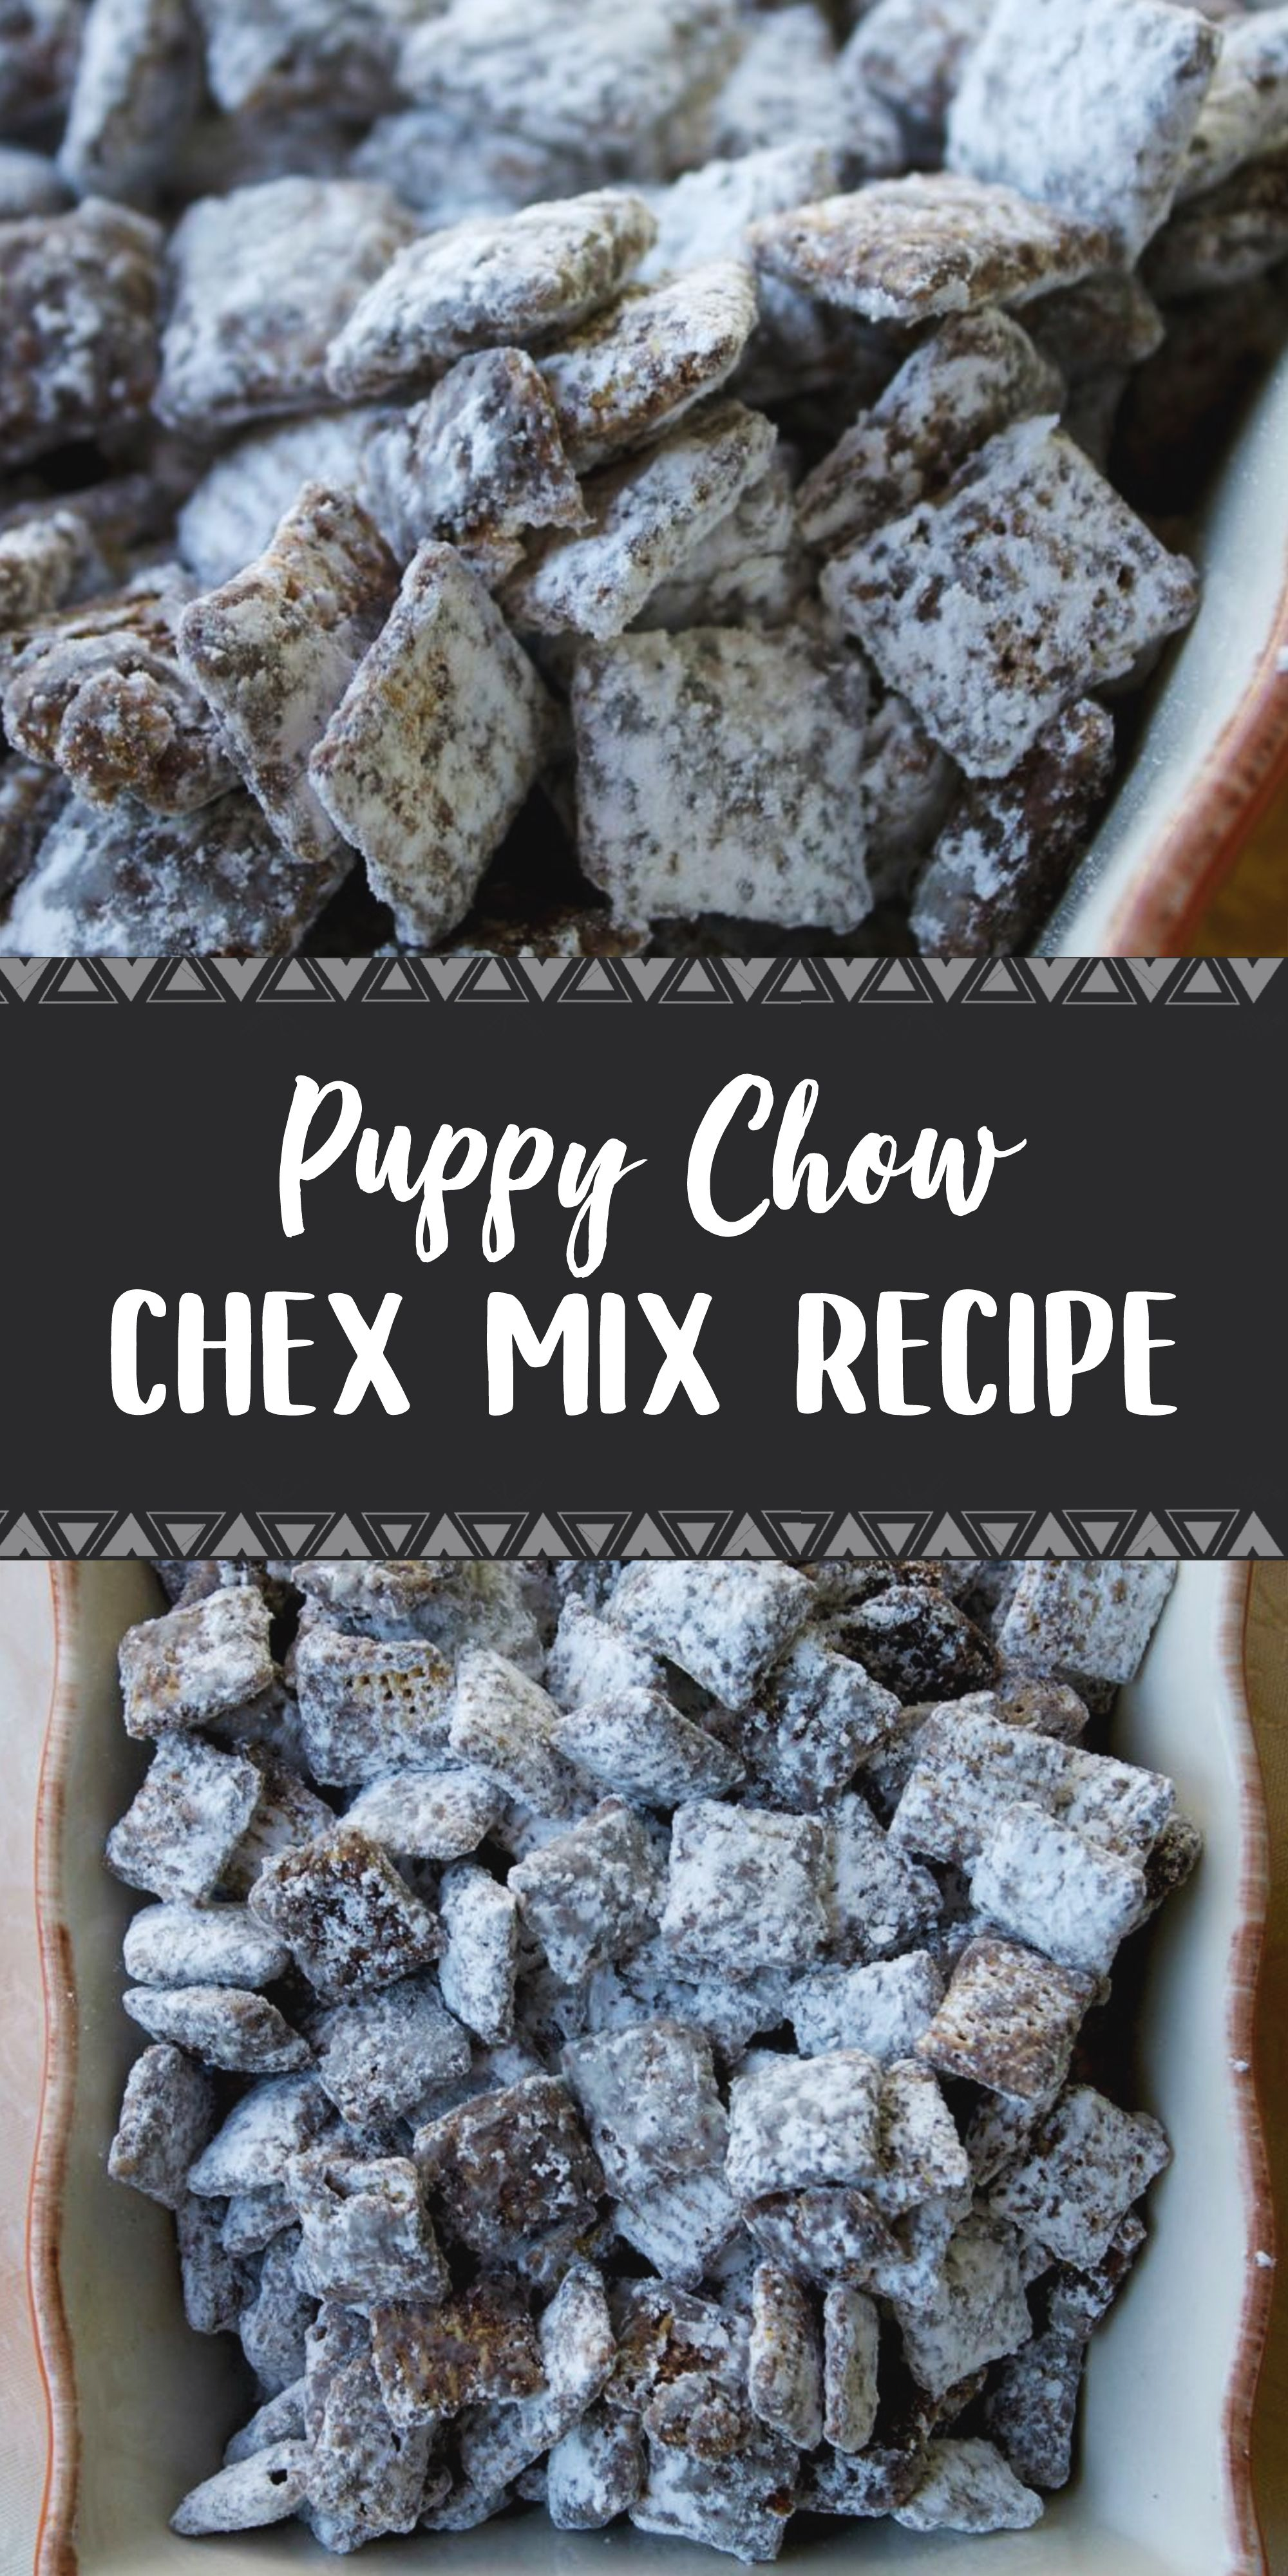 Puppy Chow Chex Mix Recipe Chex Mix Recipes Puppy Chow Chex Mix Recipe Chex Mix Puppy Chow